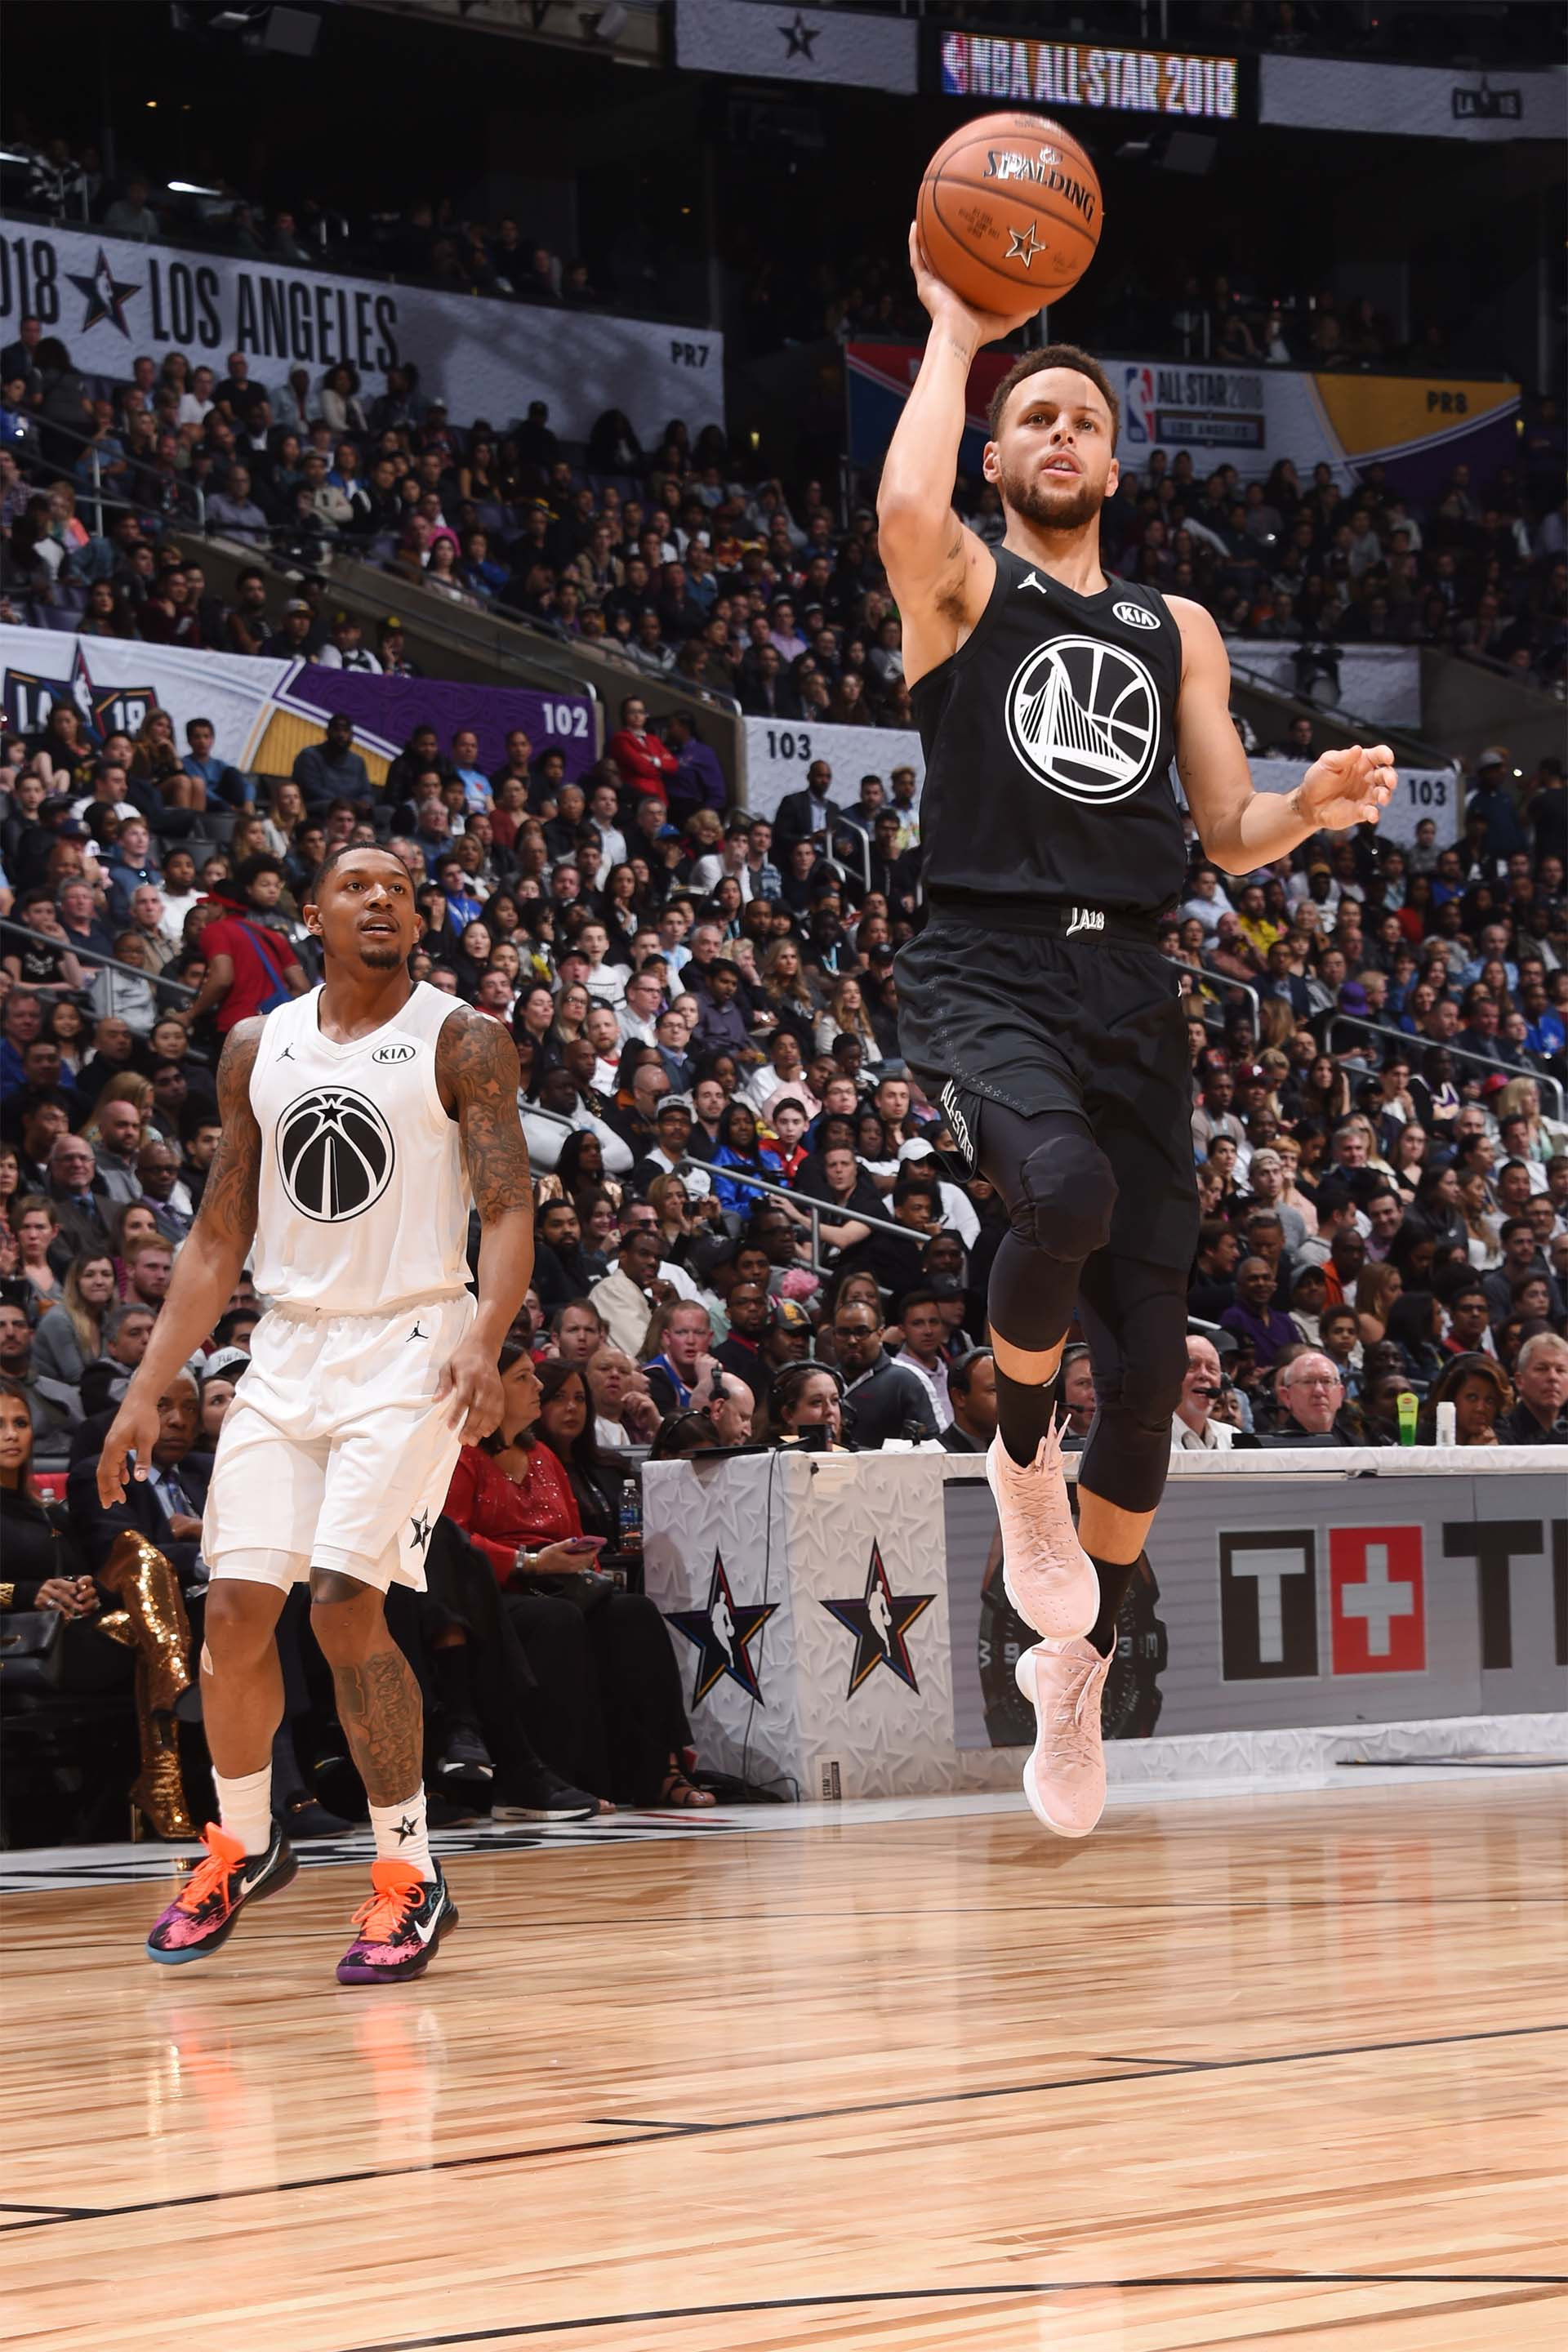 Stephen Curry, capitán de su equipo en el All Star Game NBA 2018